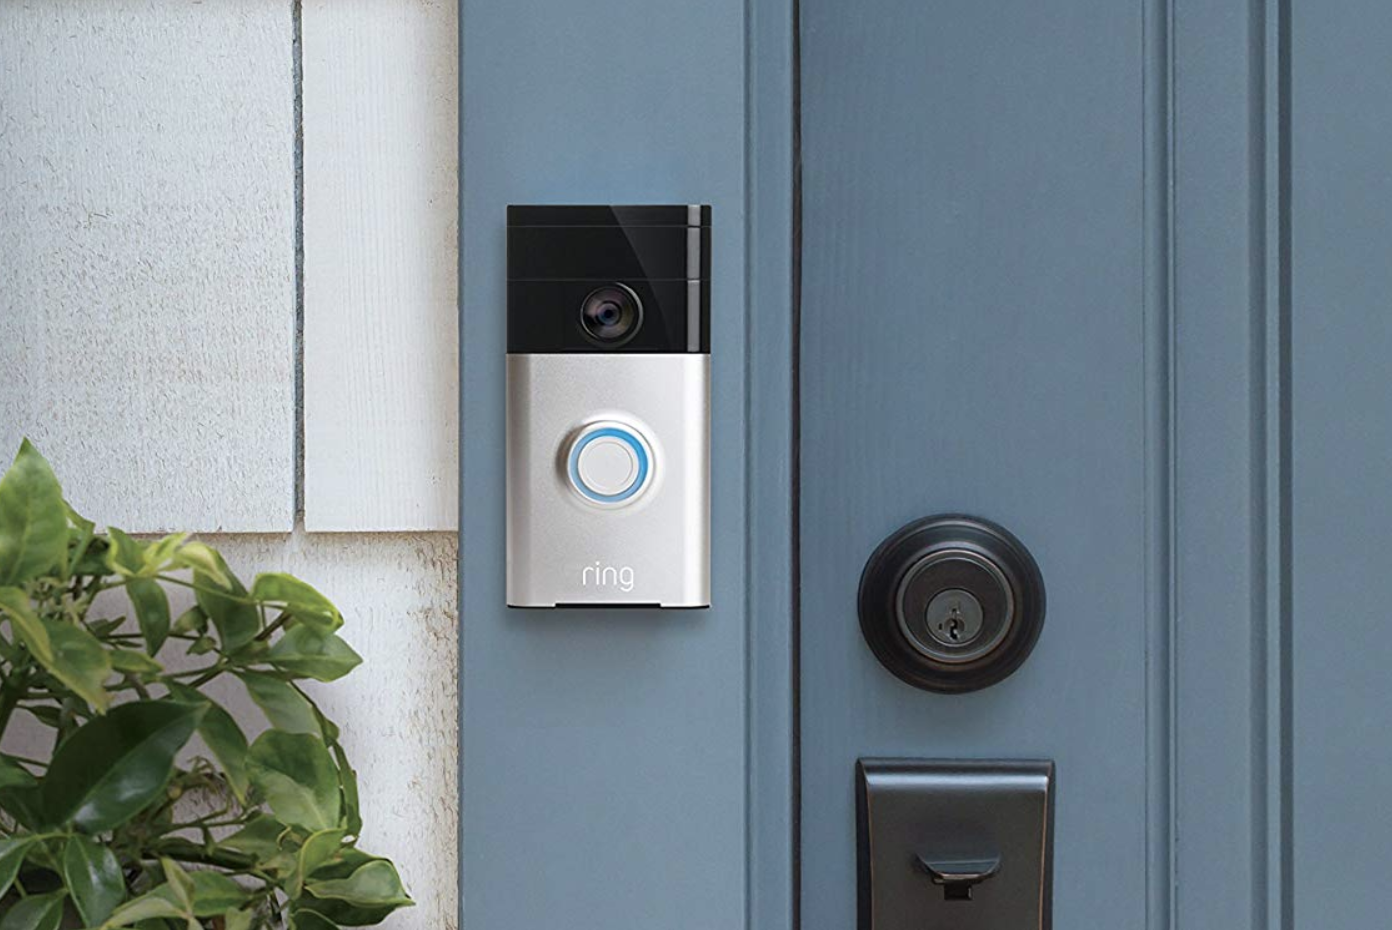 Ring Wi-Fi Enabled Video Doorbell in Satin Nickel - $69.99 (Down From $99.99)